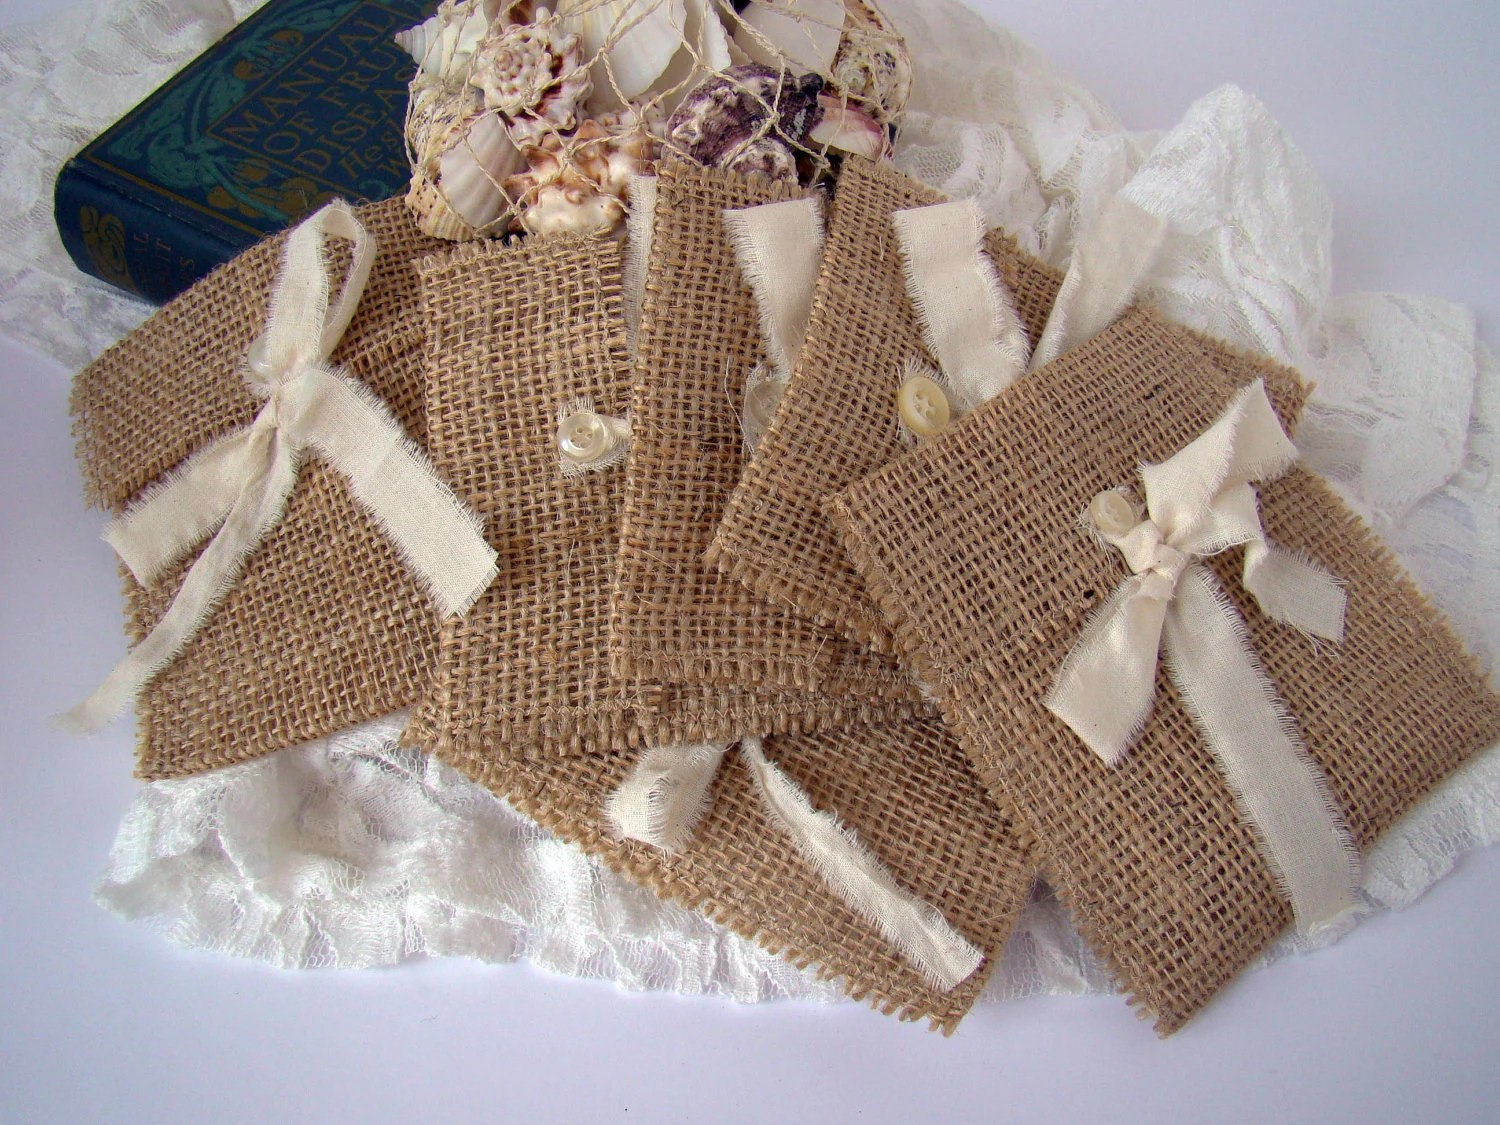 Rustic Burlap Wedding Favor Gift Bag By TwiningVines On Etsy